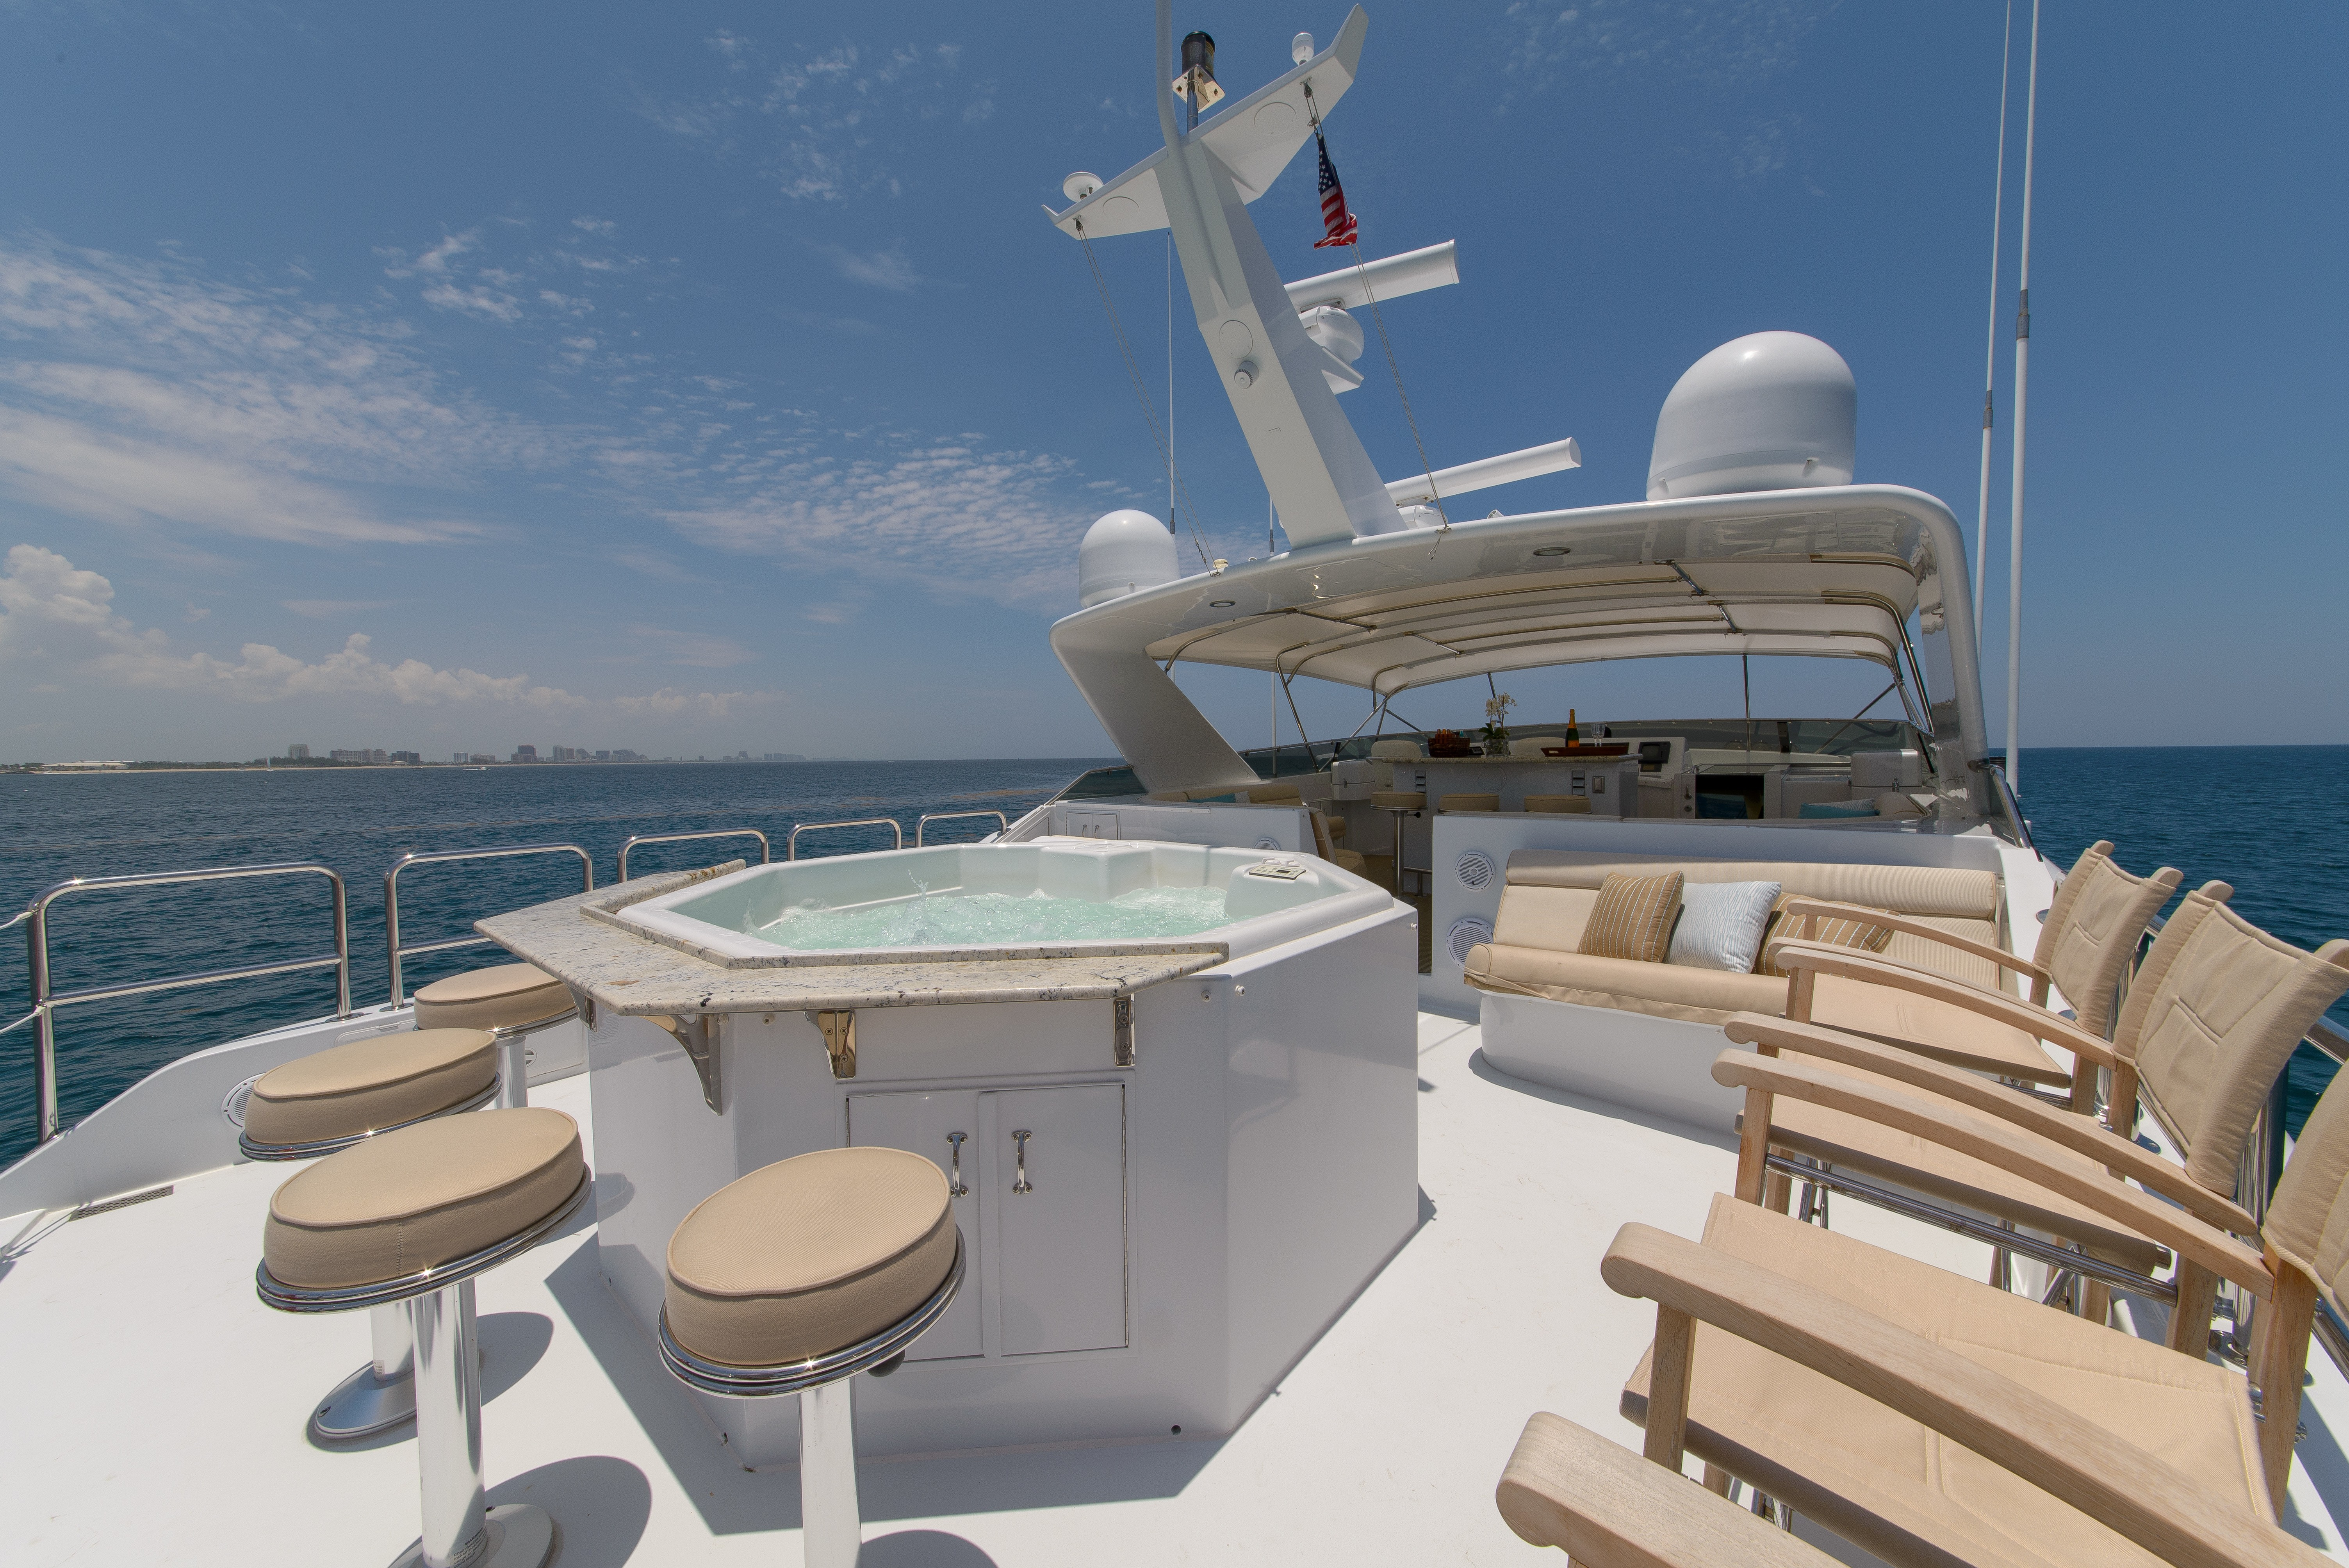 The 25m Yacht PERFECT LADY